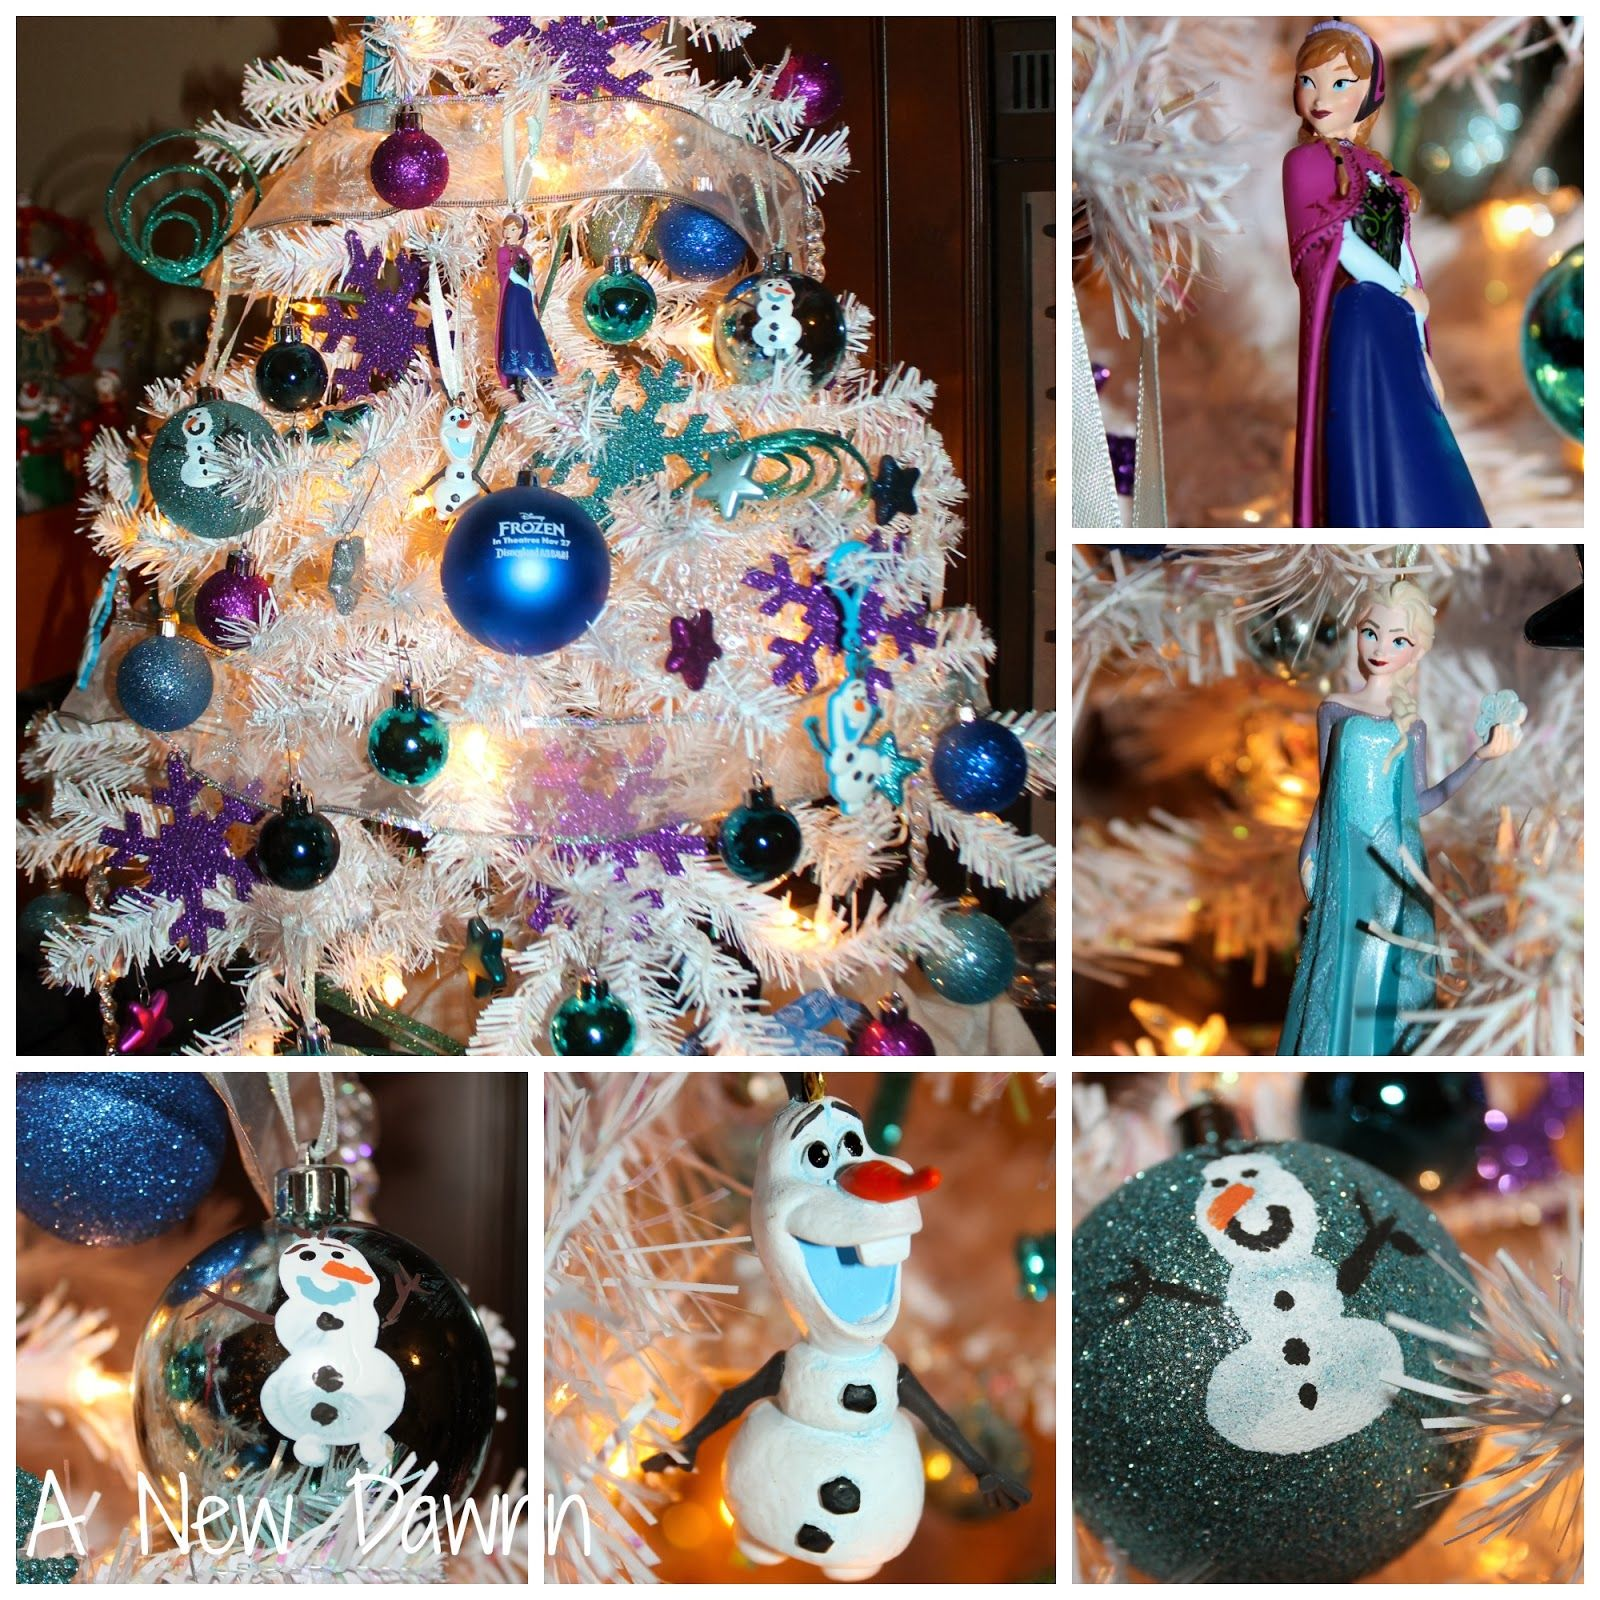 Disney's Frozen themed Christmas tree with handmade ornaments ...